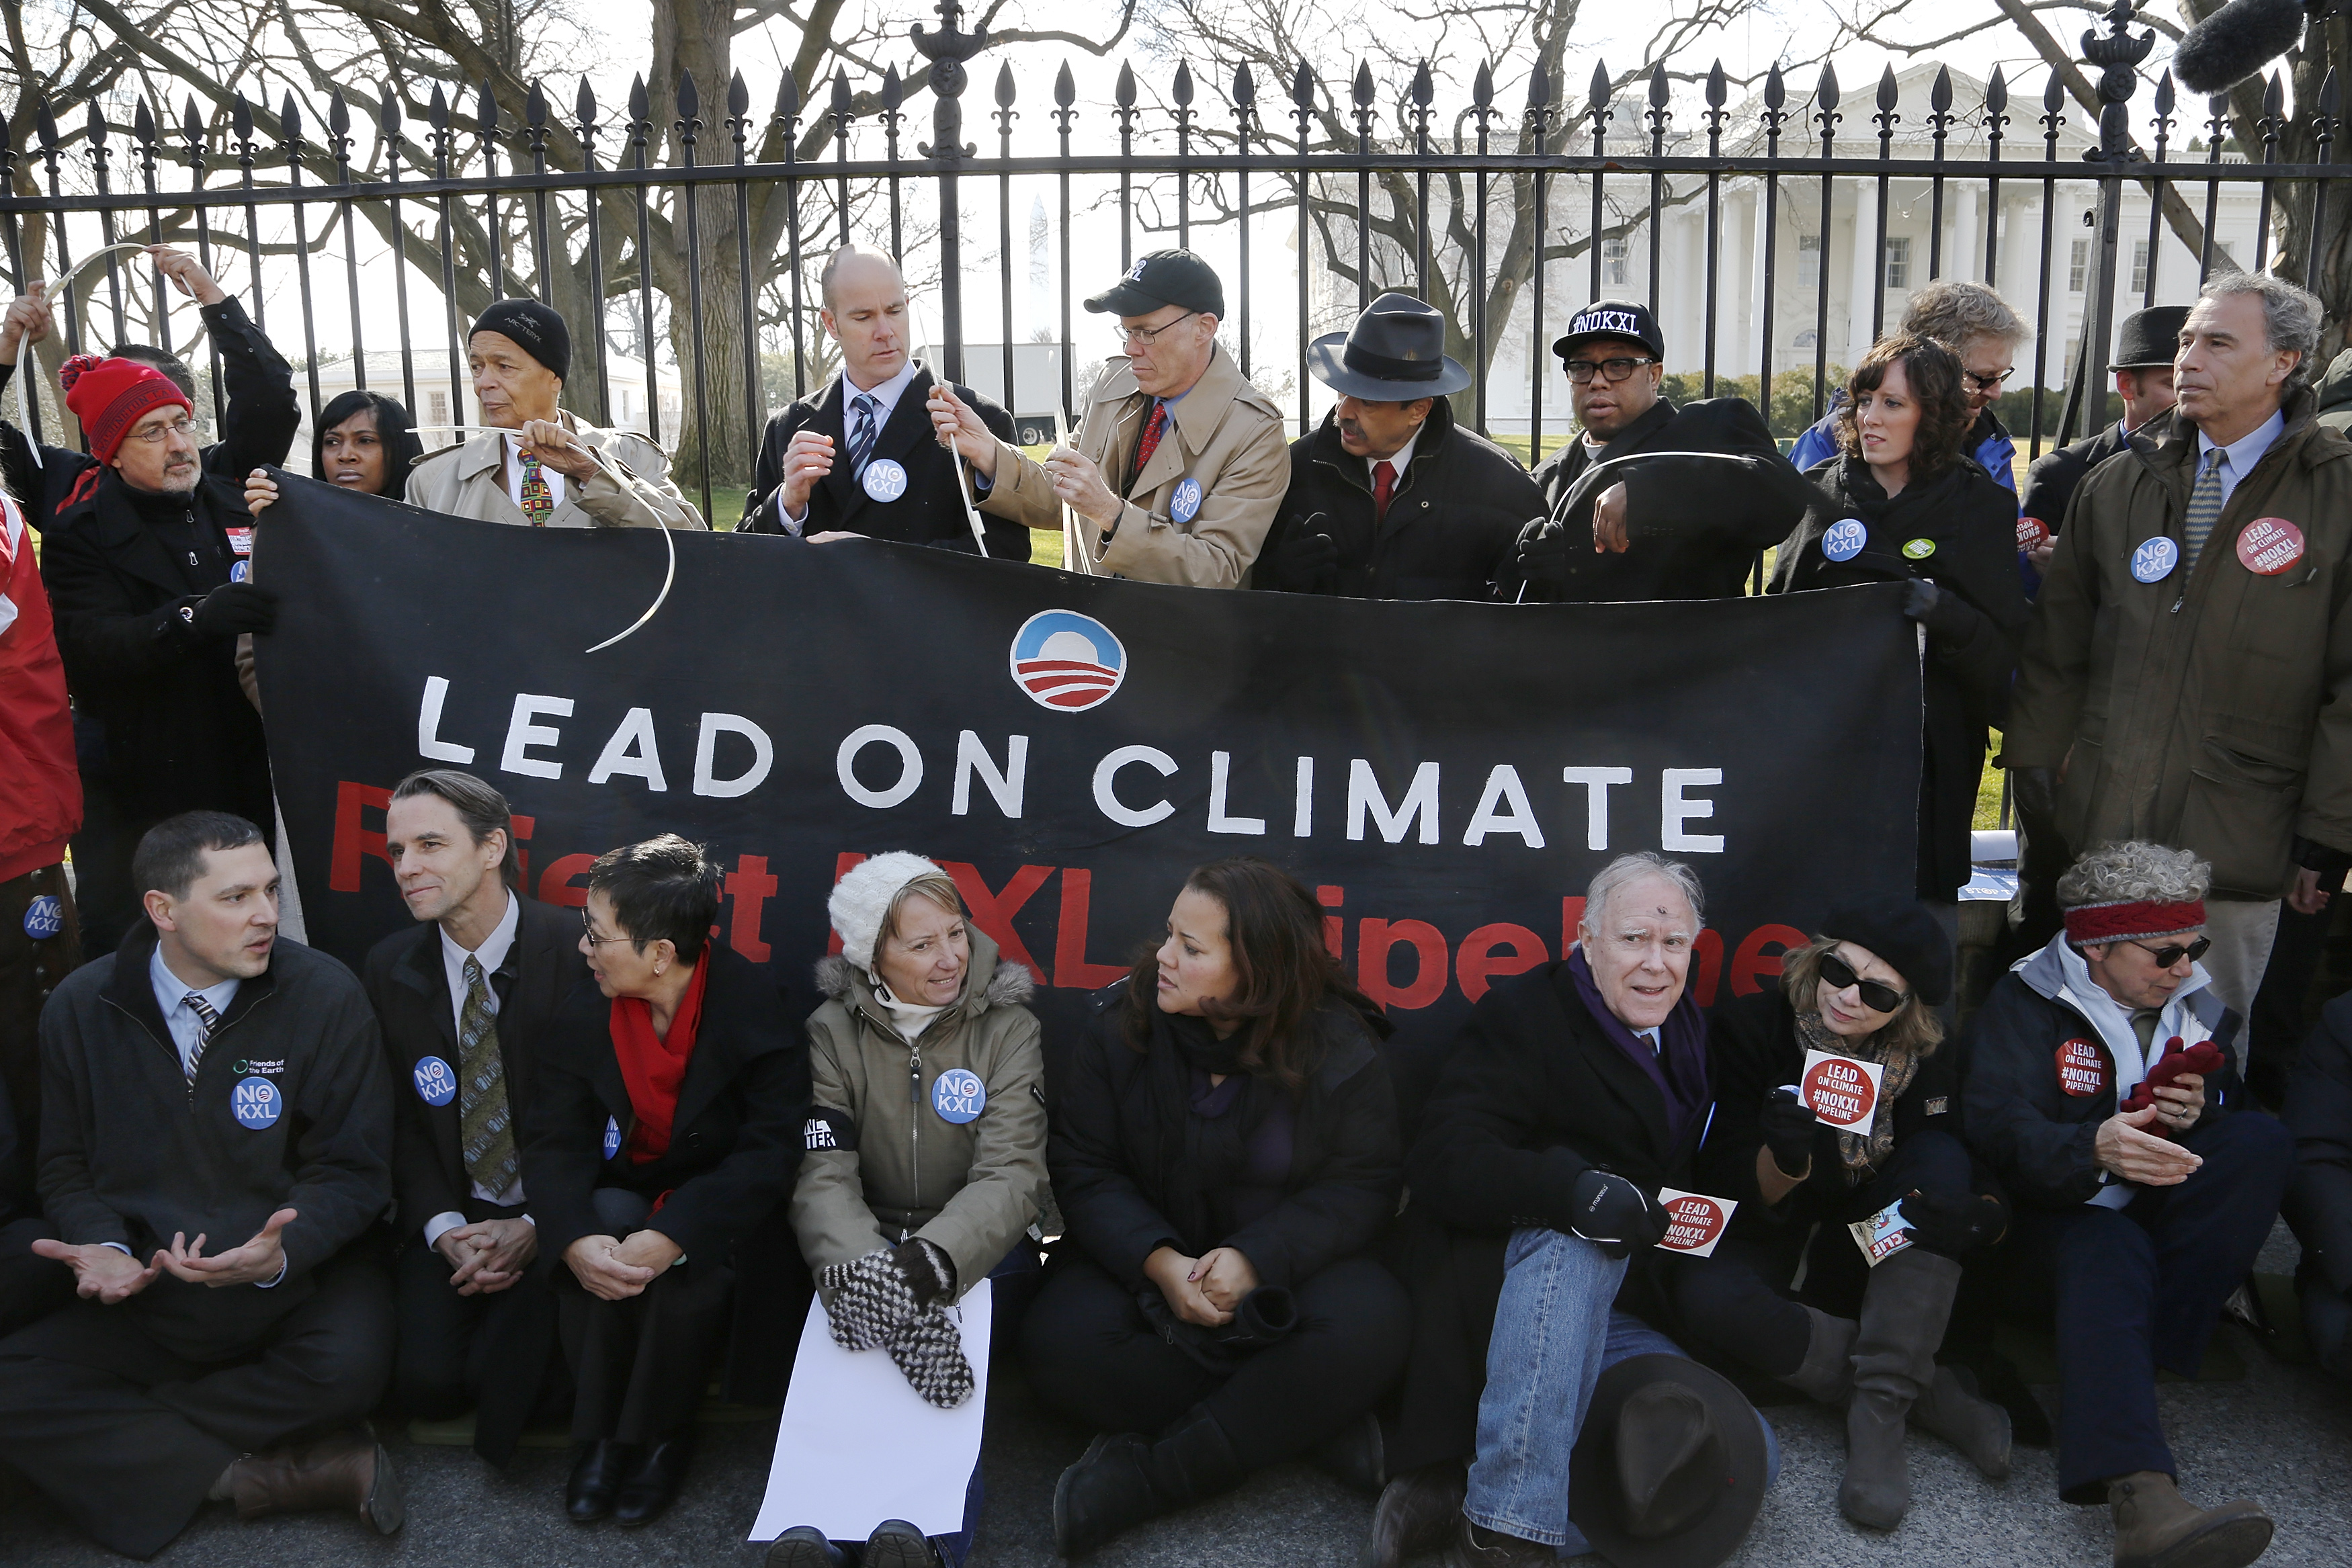 Activists opposed to the Keystone XL tar sands pipeline project tie themselves to the White House fence during an environmental protest in Washington